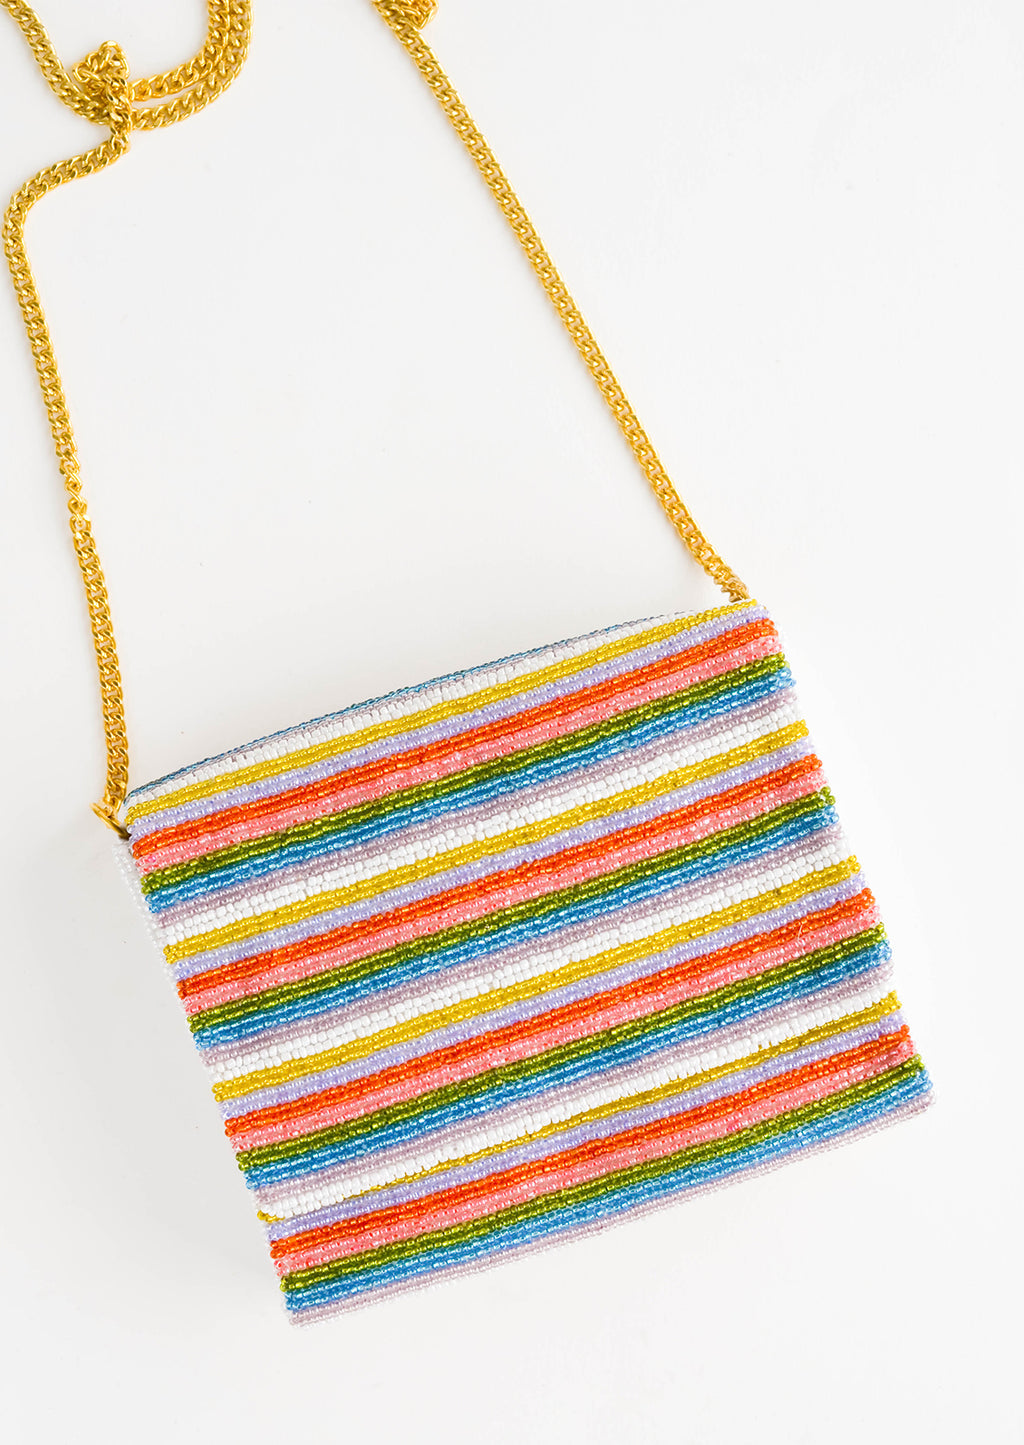 2: Striped Beaded Box Clutch